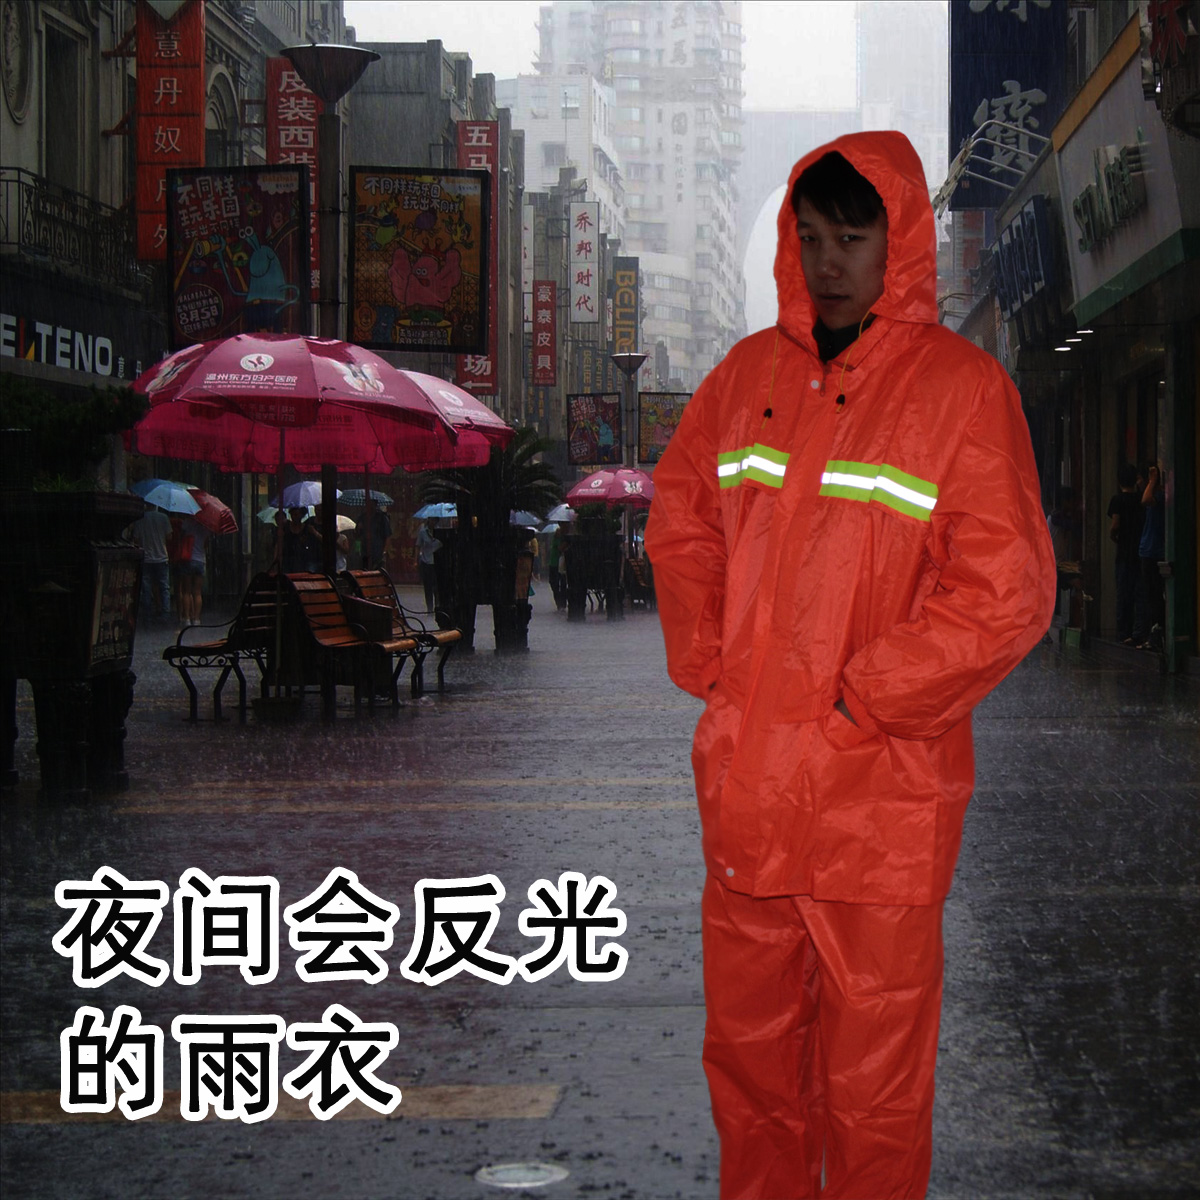 Mnsd sanitation orange reflective raincoat sanitation overalls suit men and women raincoat labor security clothing clothes raincoat garden